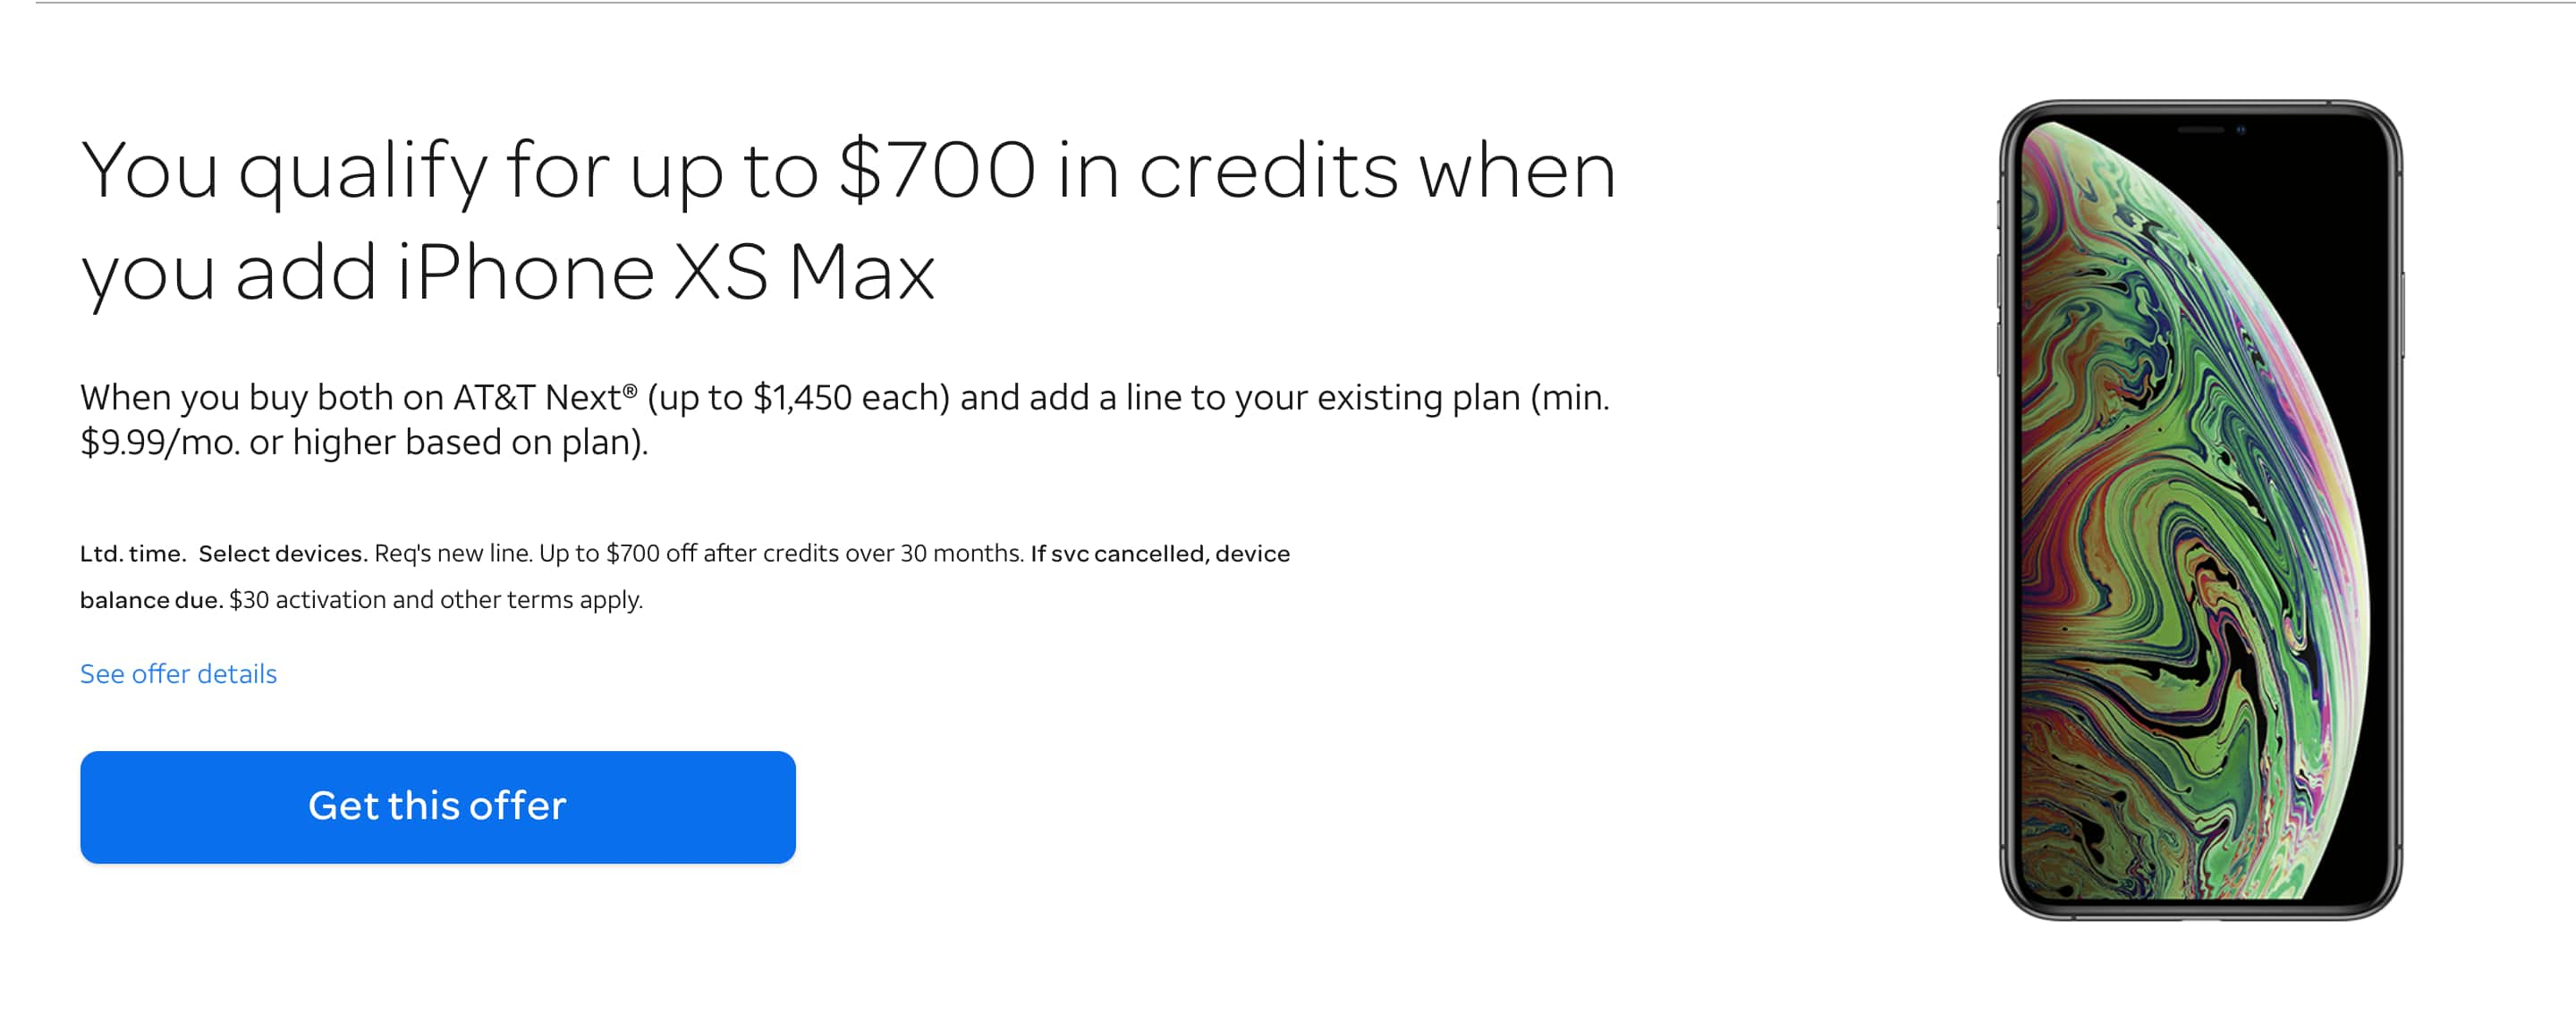 LIVE - AT&T - iphone XS and iPhone XS MAX BOGO - $700 off